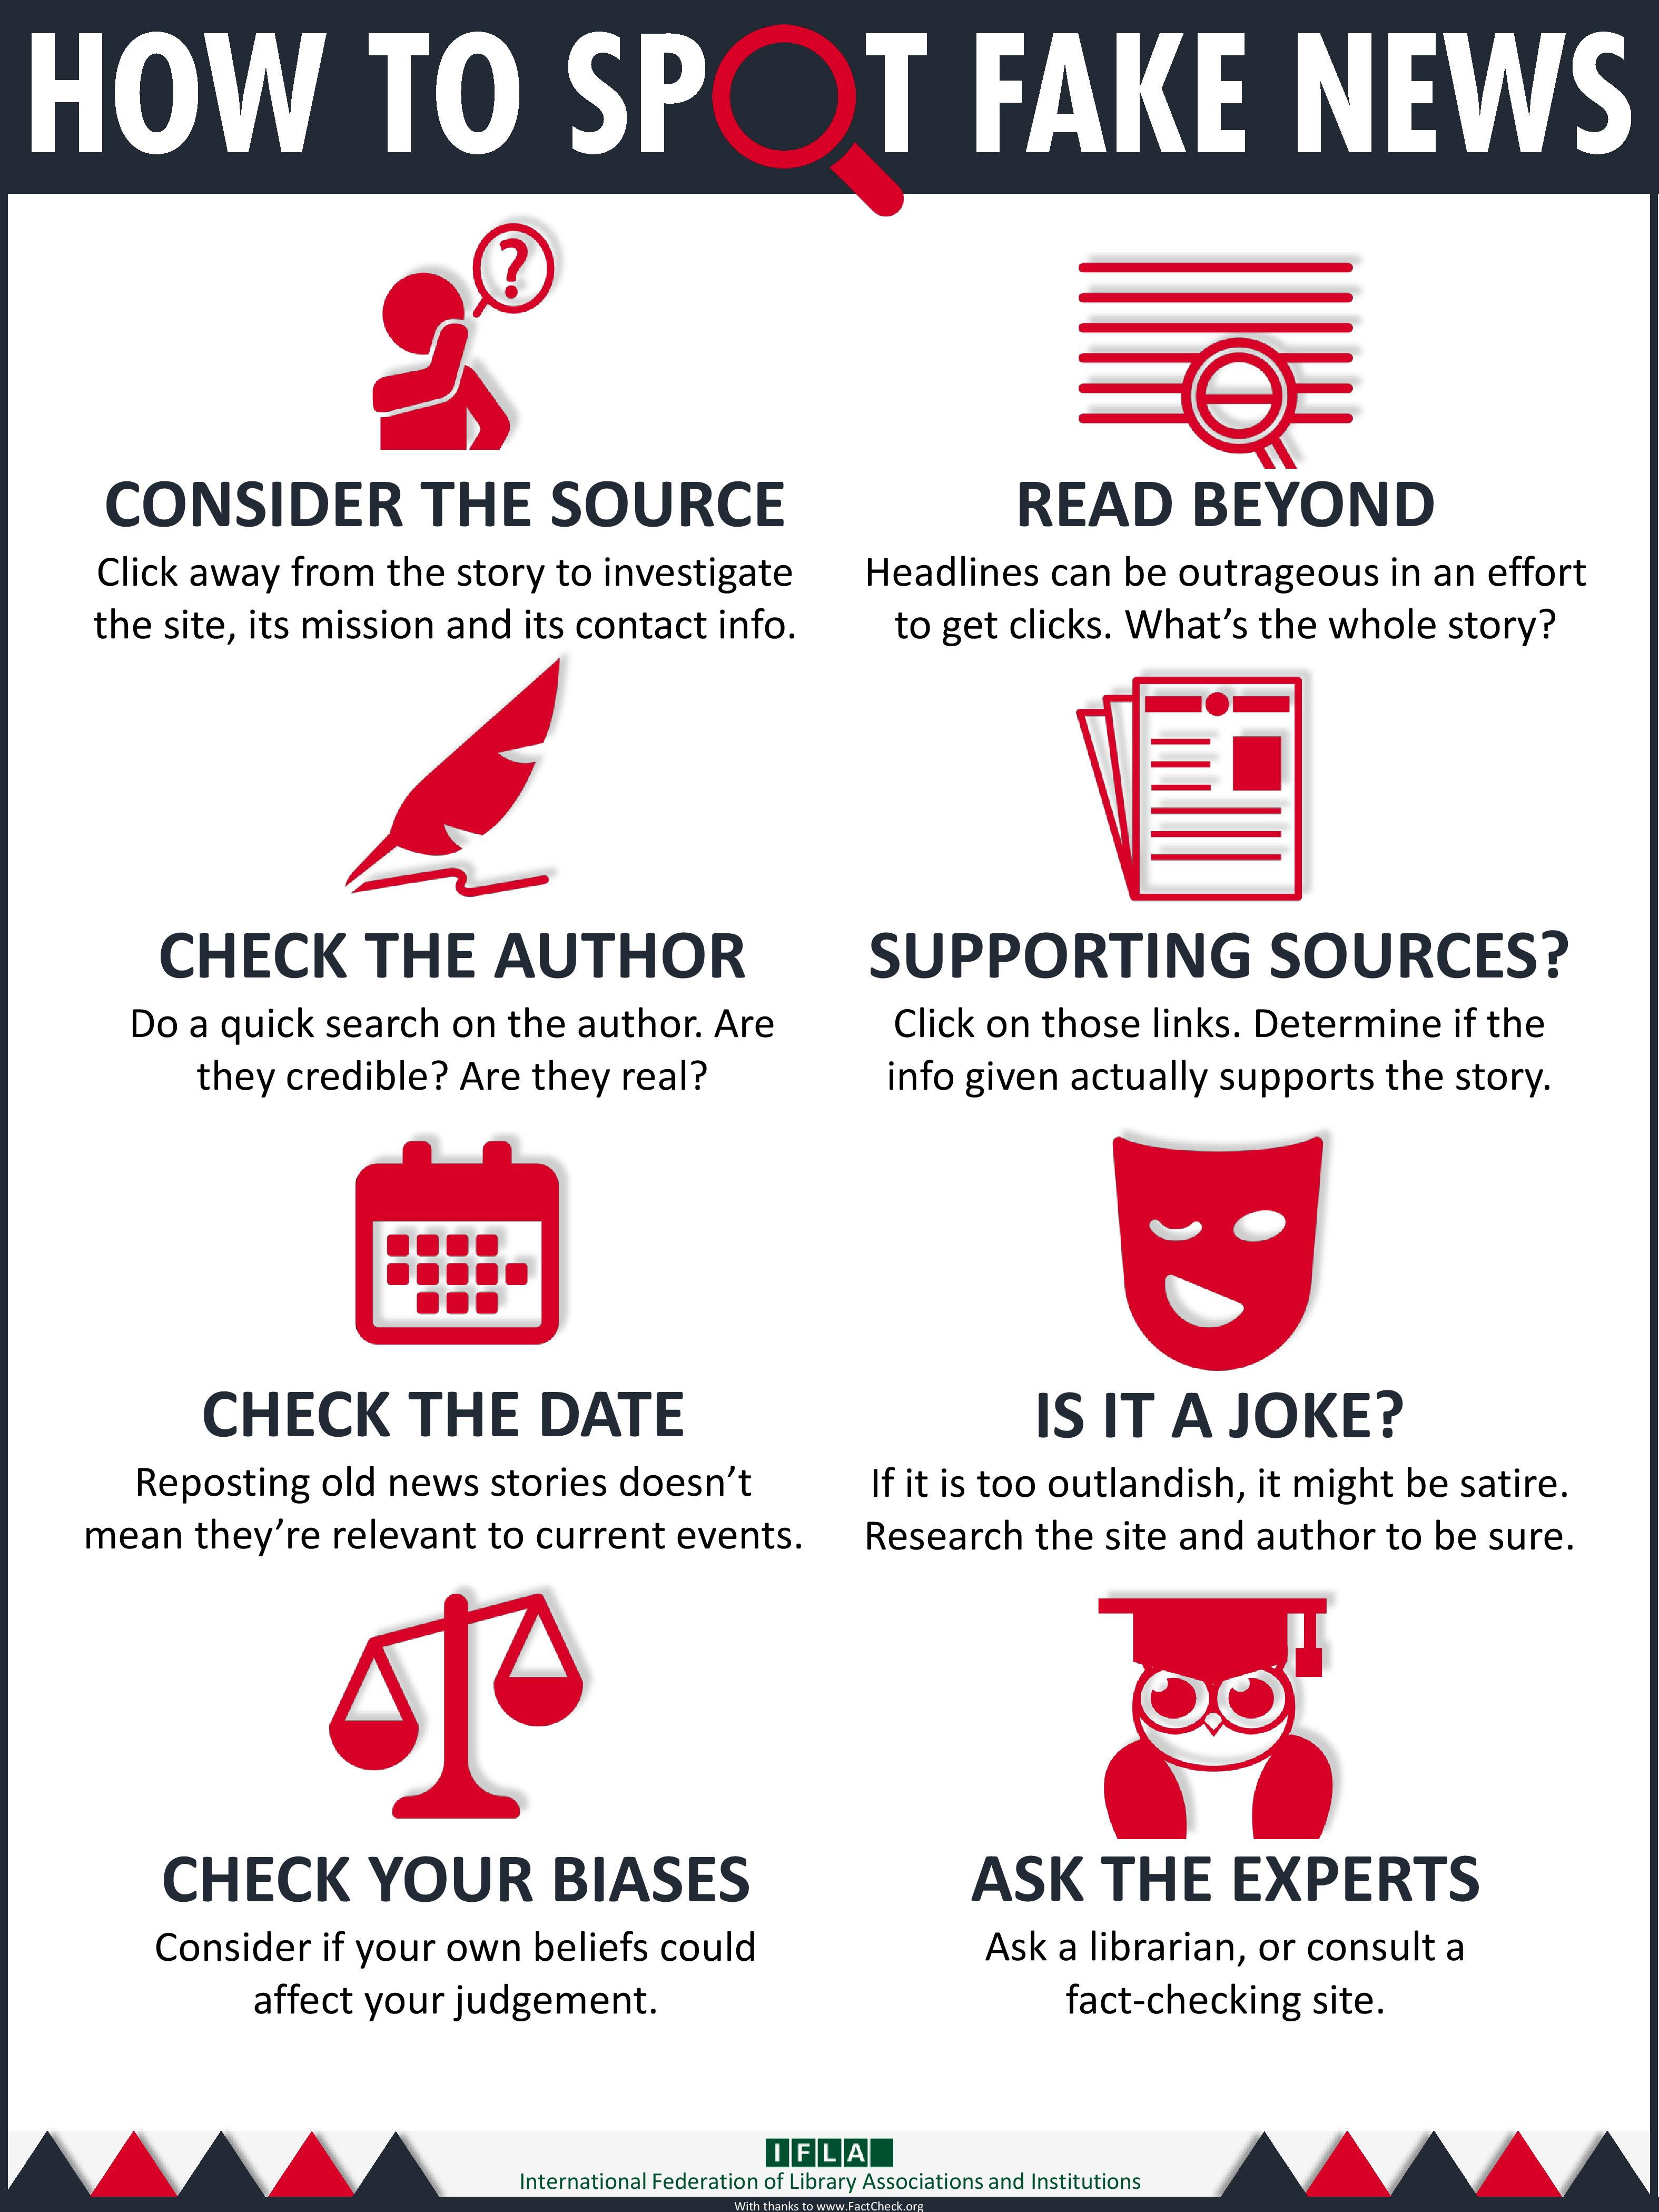 How to spot fake news info graphic see below for text